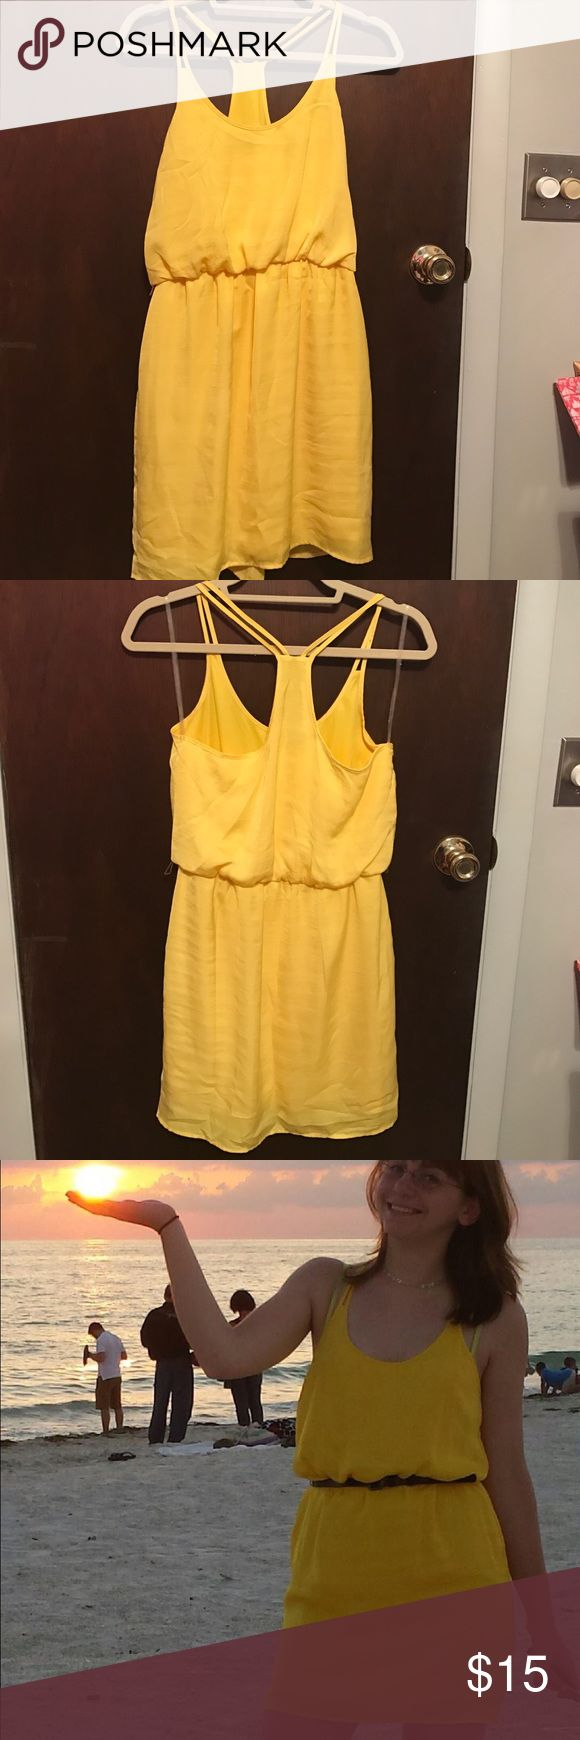 Yellow Sundress Yellow Sundress that comes with a brown belt. Pairs nicely with tan sandals/wedges. There is a layer underneath that can be a bit tight in the hips. City Triangles Dresses Mini